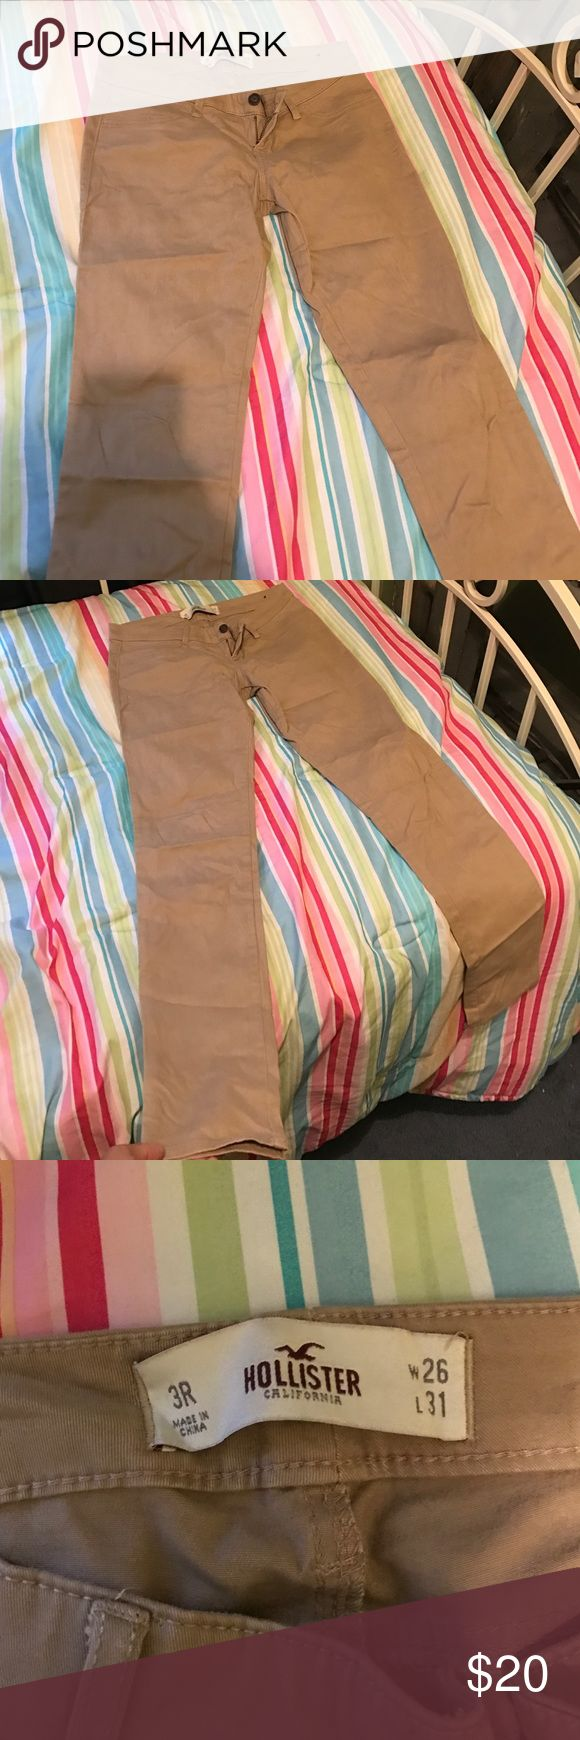 KHAKI SKINNY JEANS HOLLISTER Khaki skinny jeans from hollister NEVER WORN. In great condition Hollister Jeans Skinny